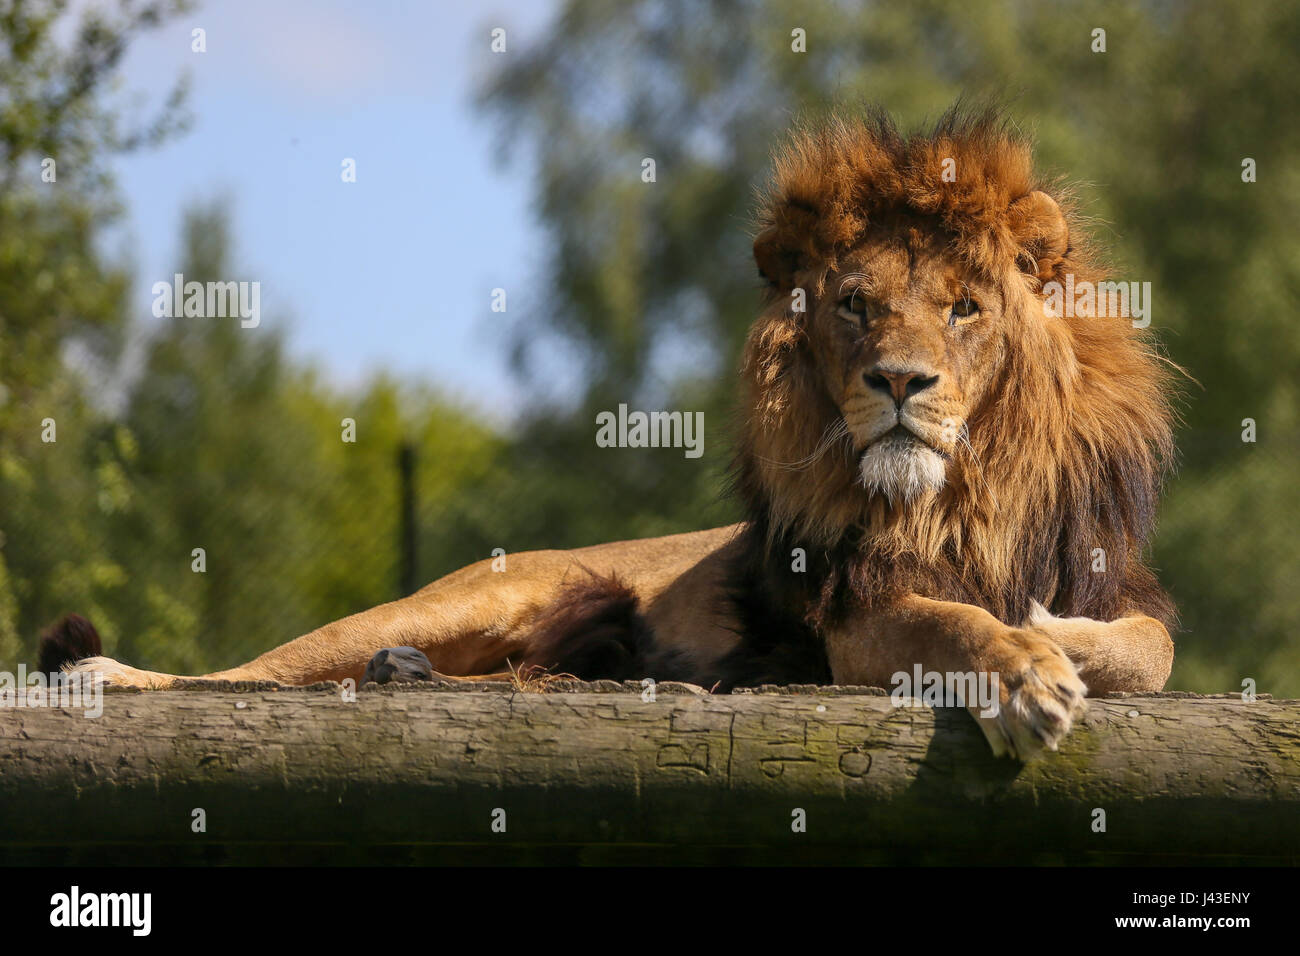 Lion at Knowsley Safari, Prescot, United Kingdom - Stock Image